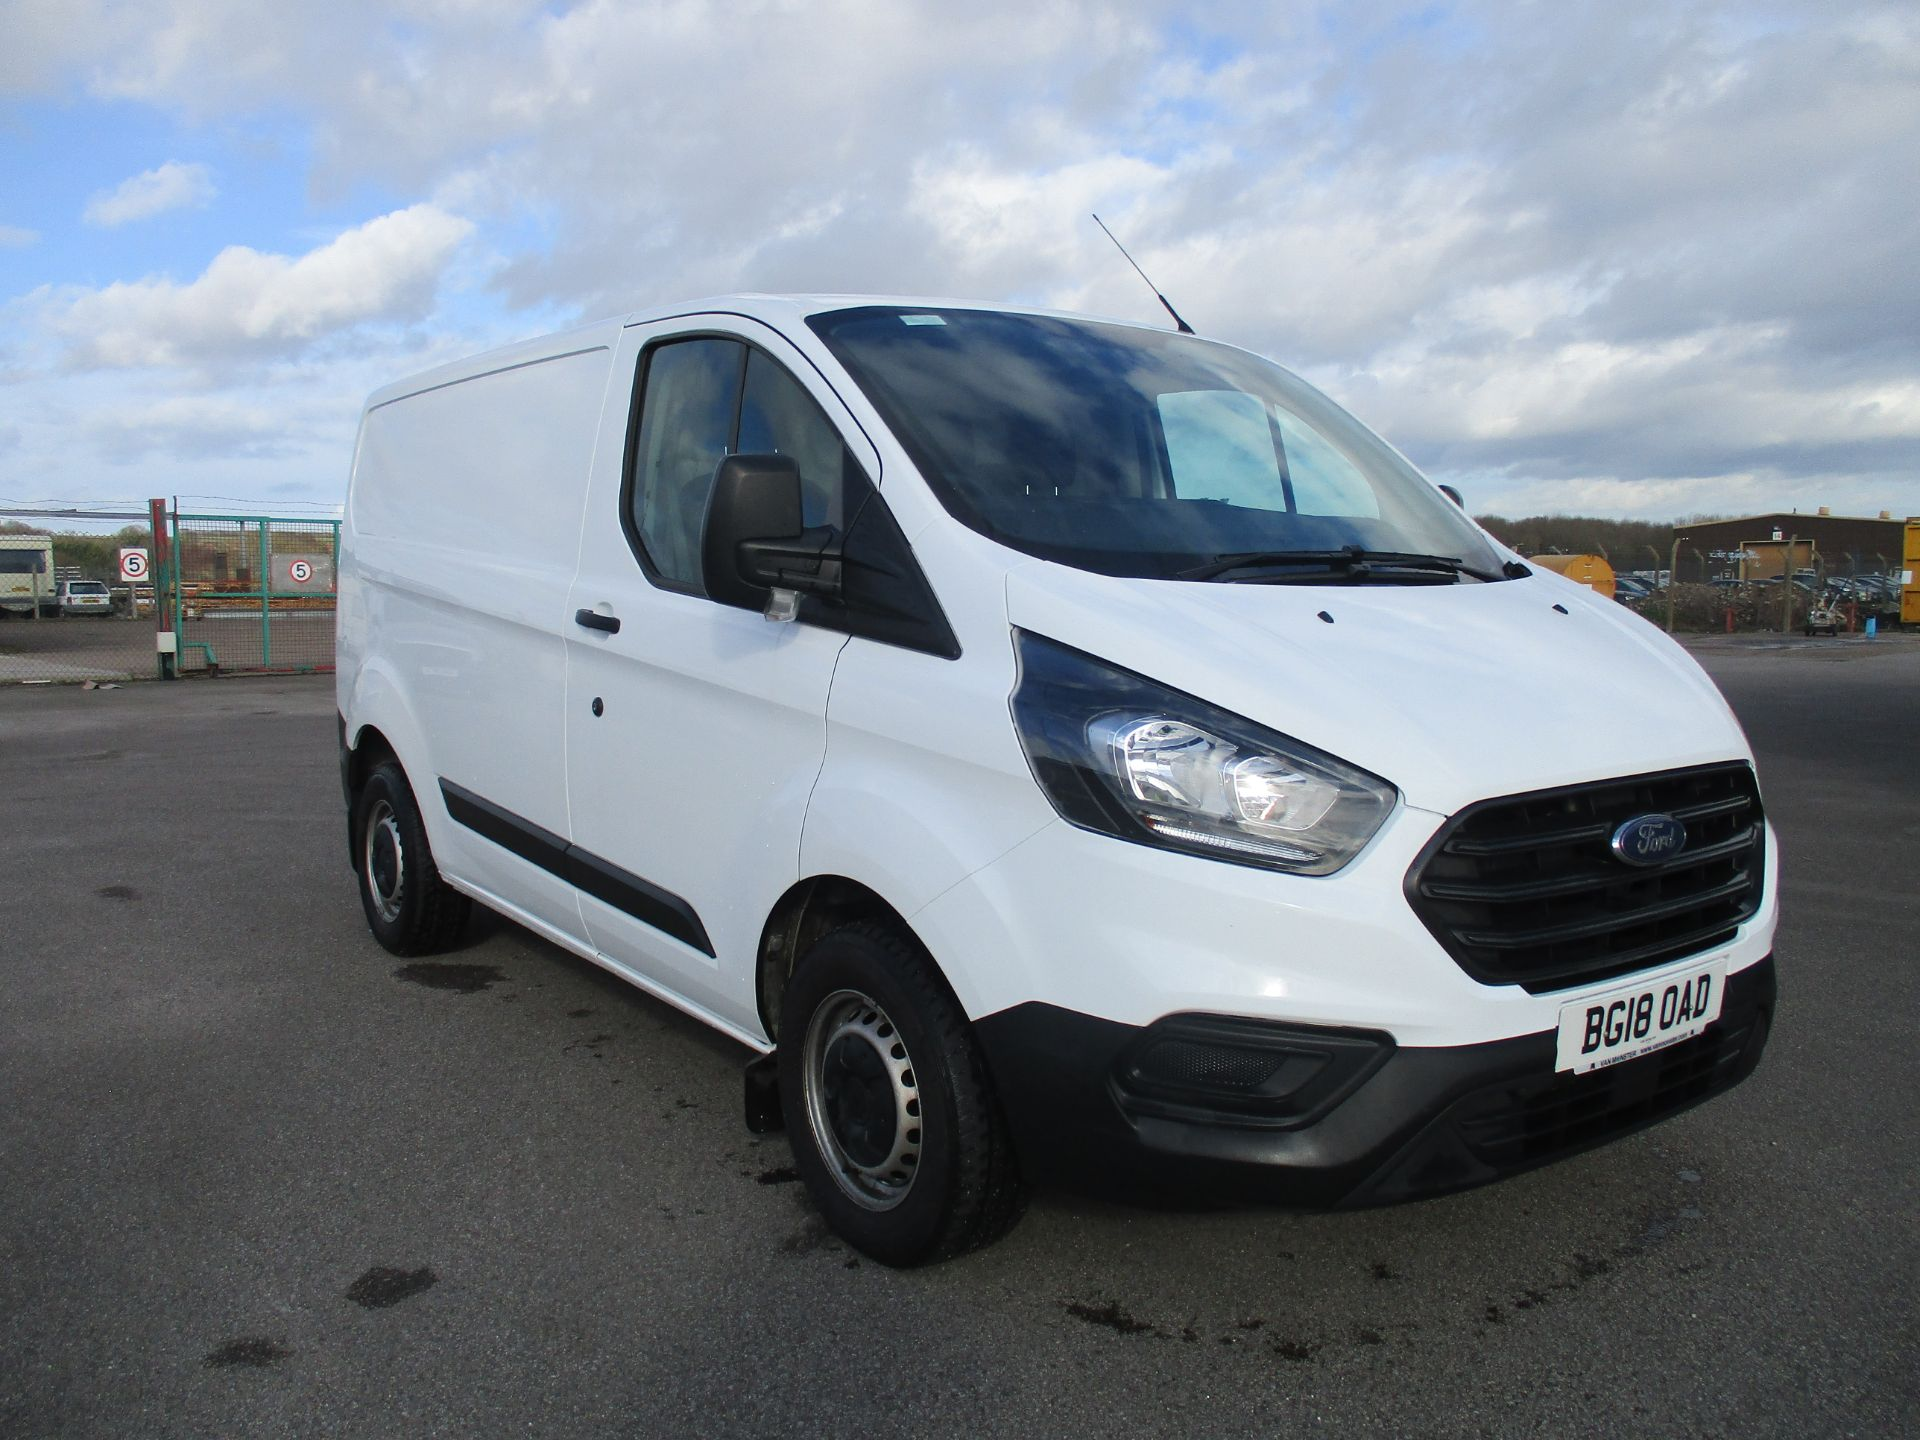 2018 Ford Transit Custom 300 L1 DIESEL FWD 2.0 TDCI 105PS LOW ROOF VAN EURO 6 (BG18OAD) Thumbnail 1